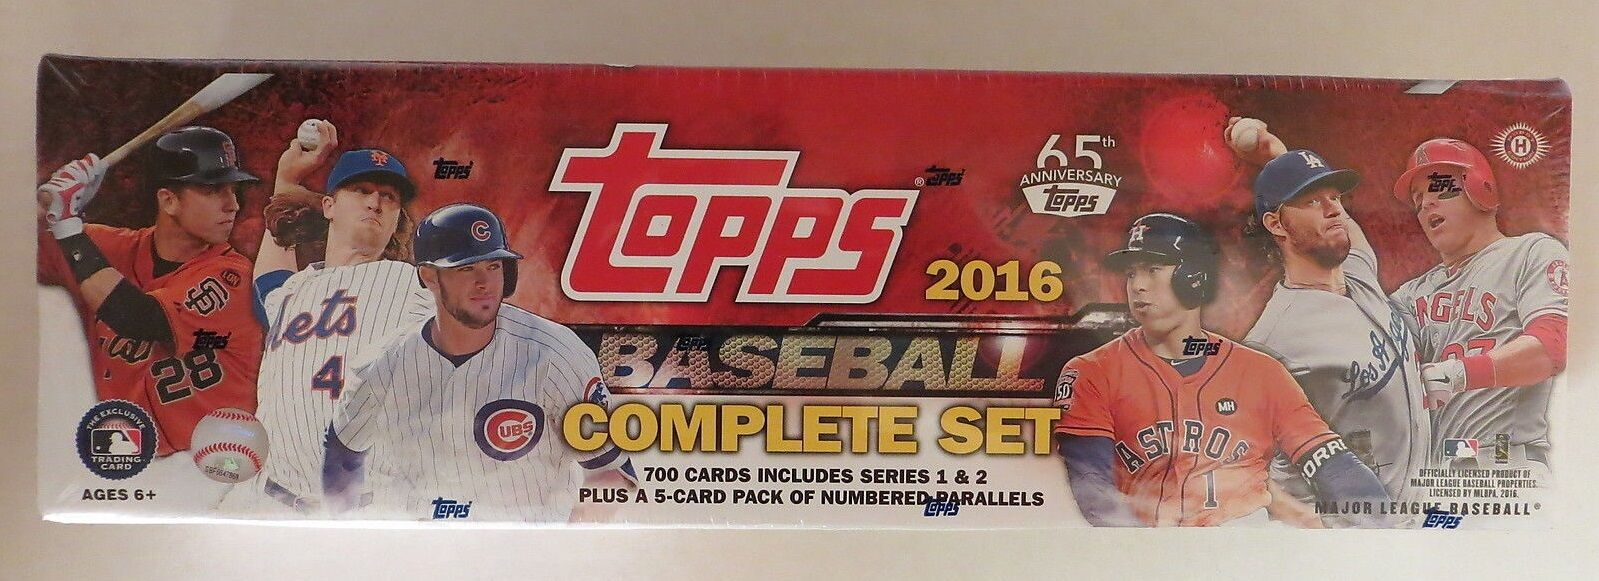 2016 Topps Complete Baseball Card Series 1 2 Rookies